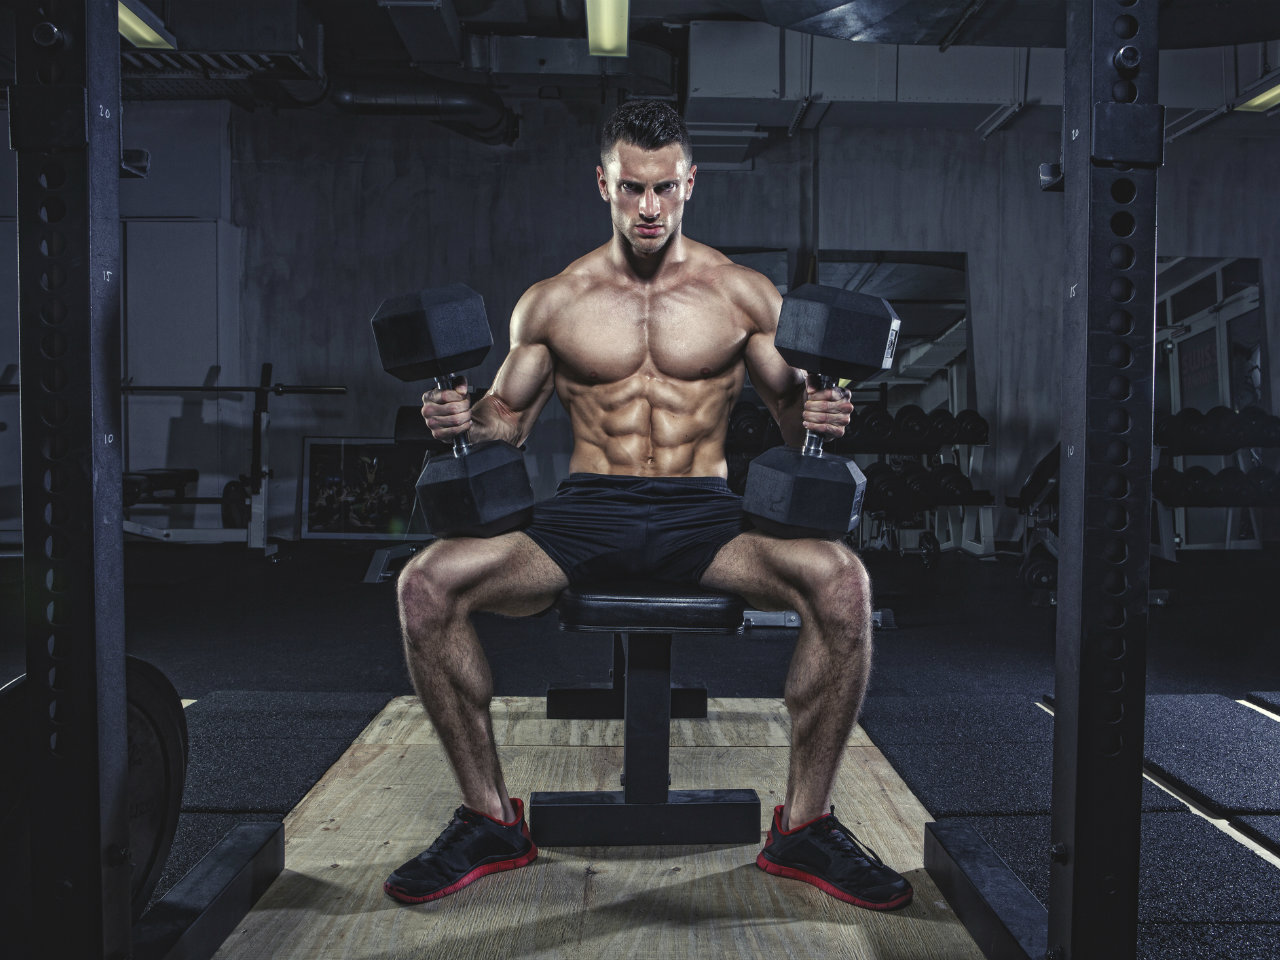 The ultimate total-body workout routine to build maximum muscle